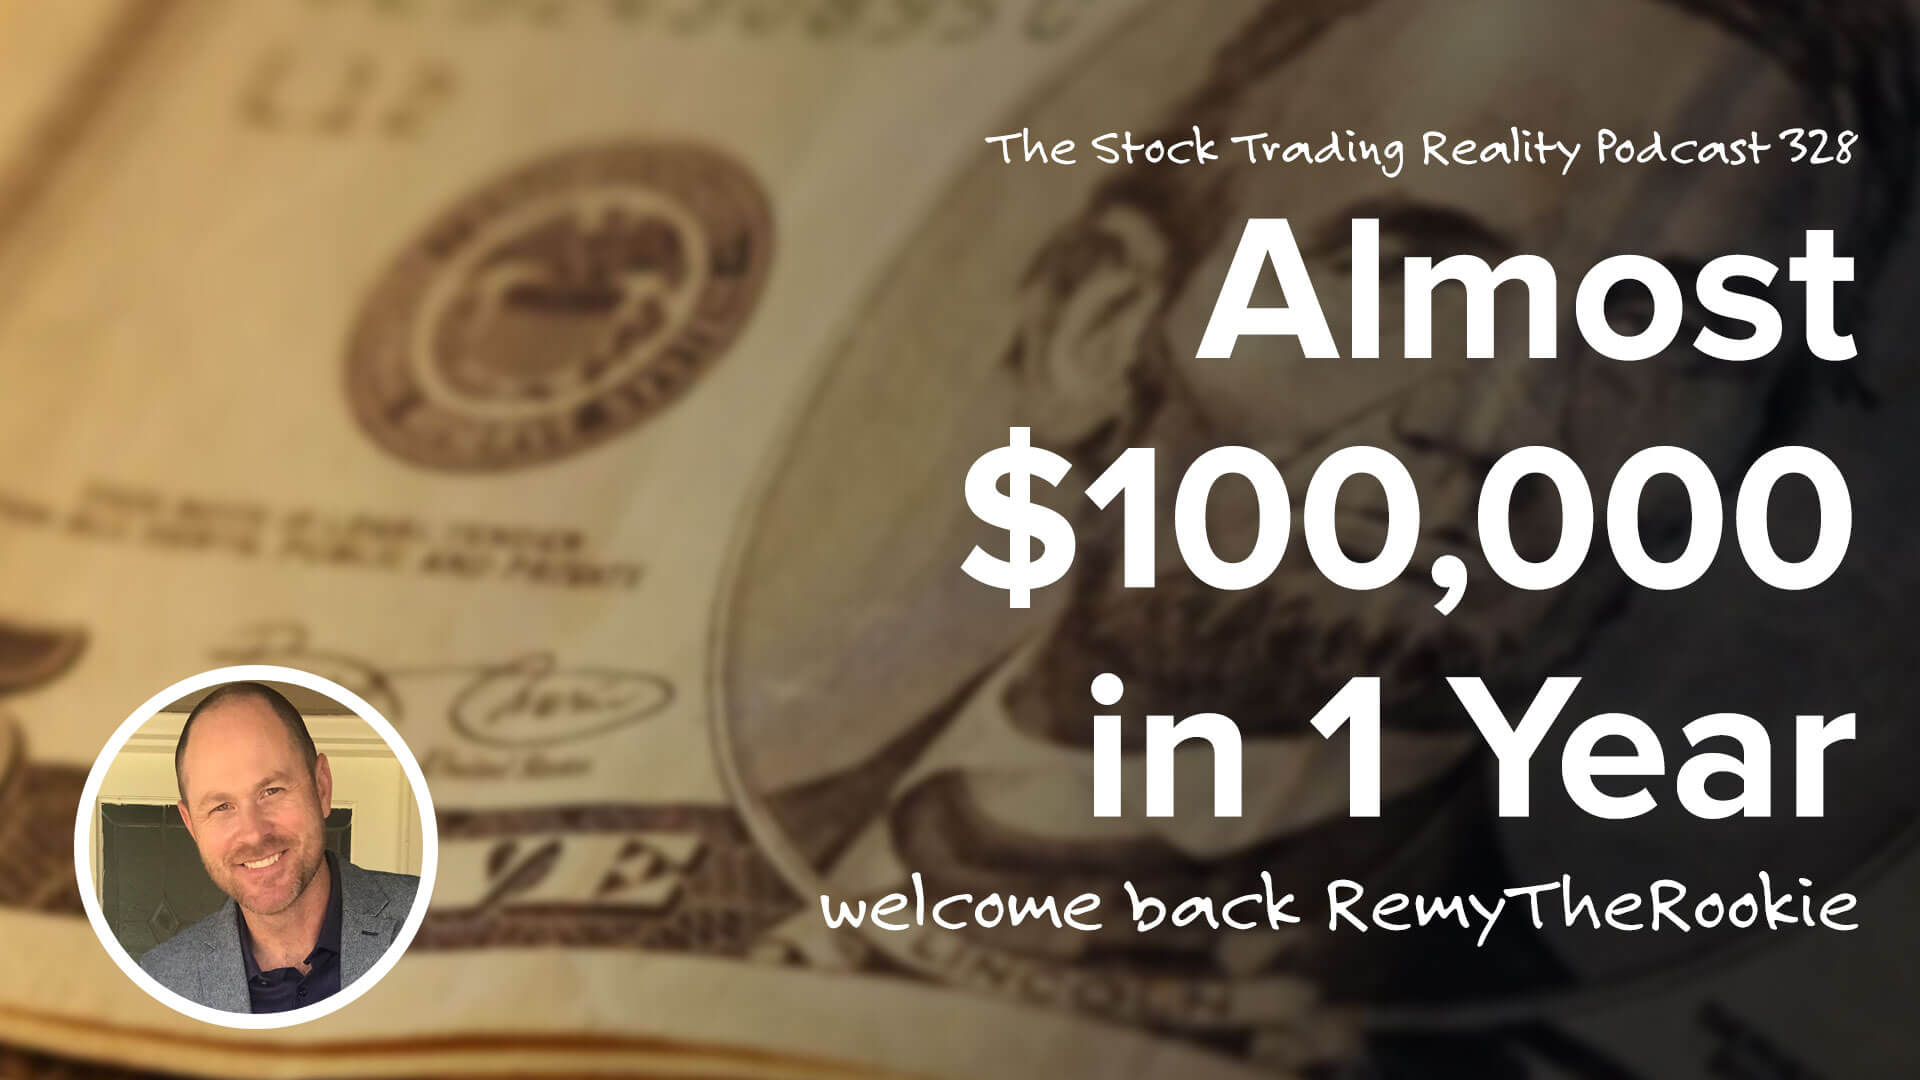 Making (almost) $100,000 in 1 Year   STR 328